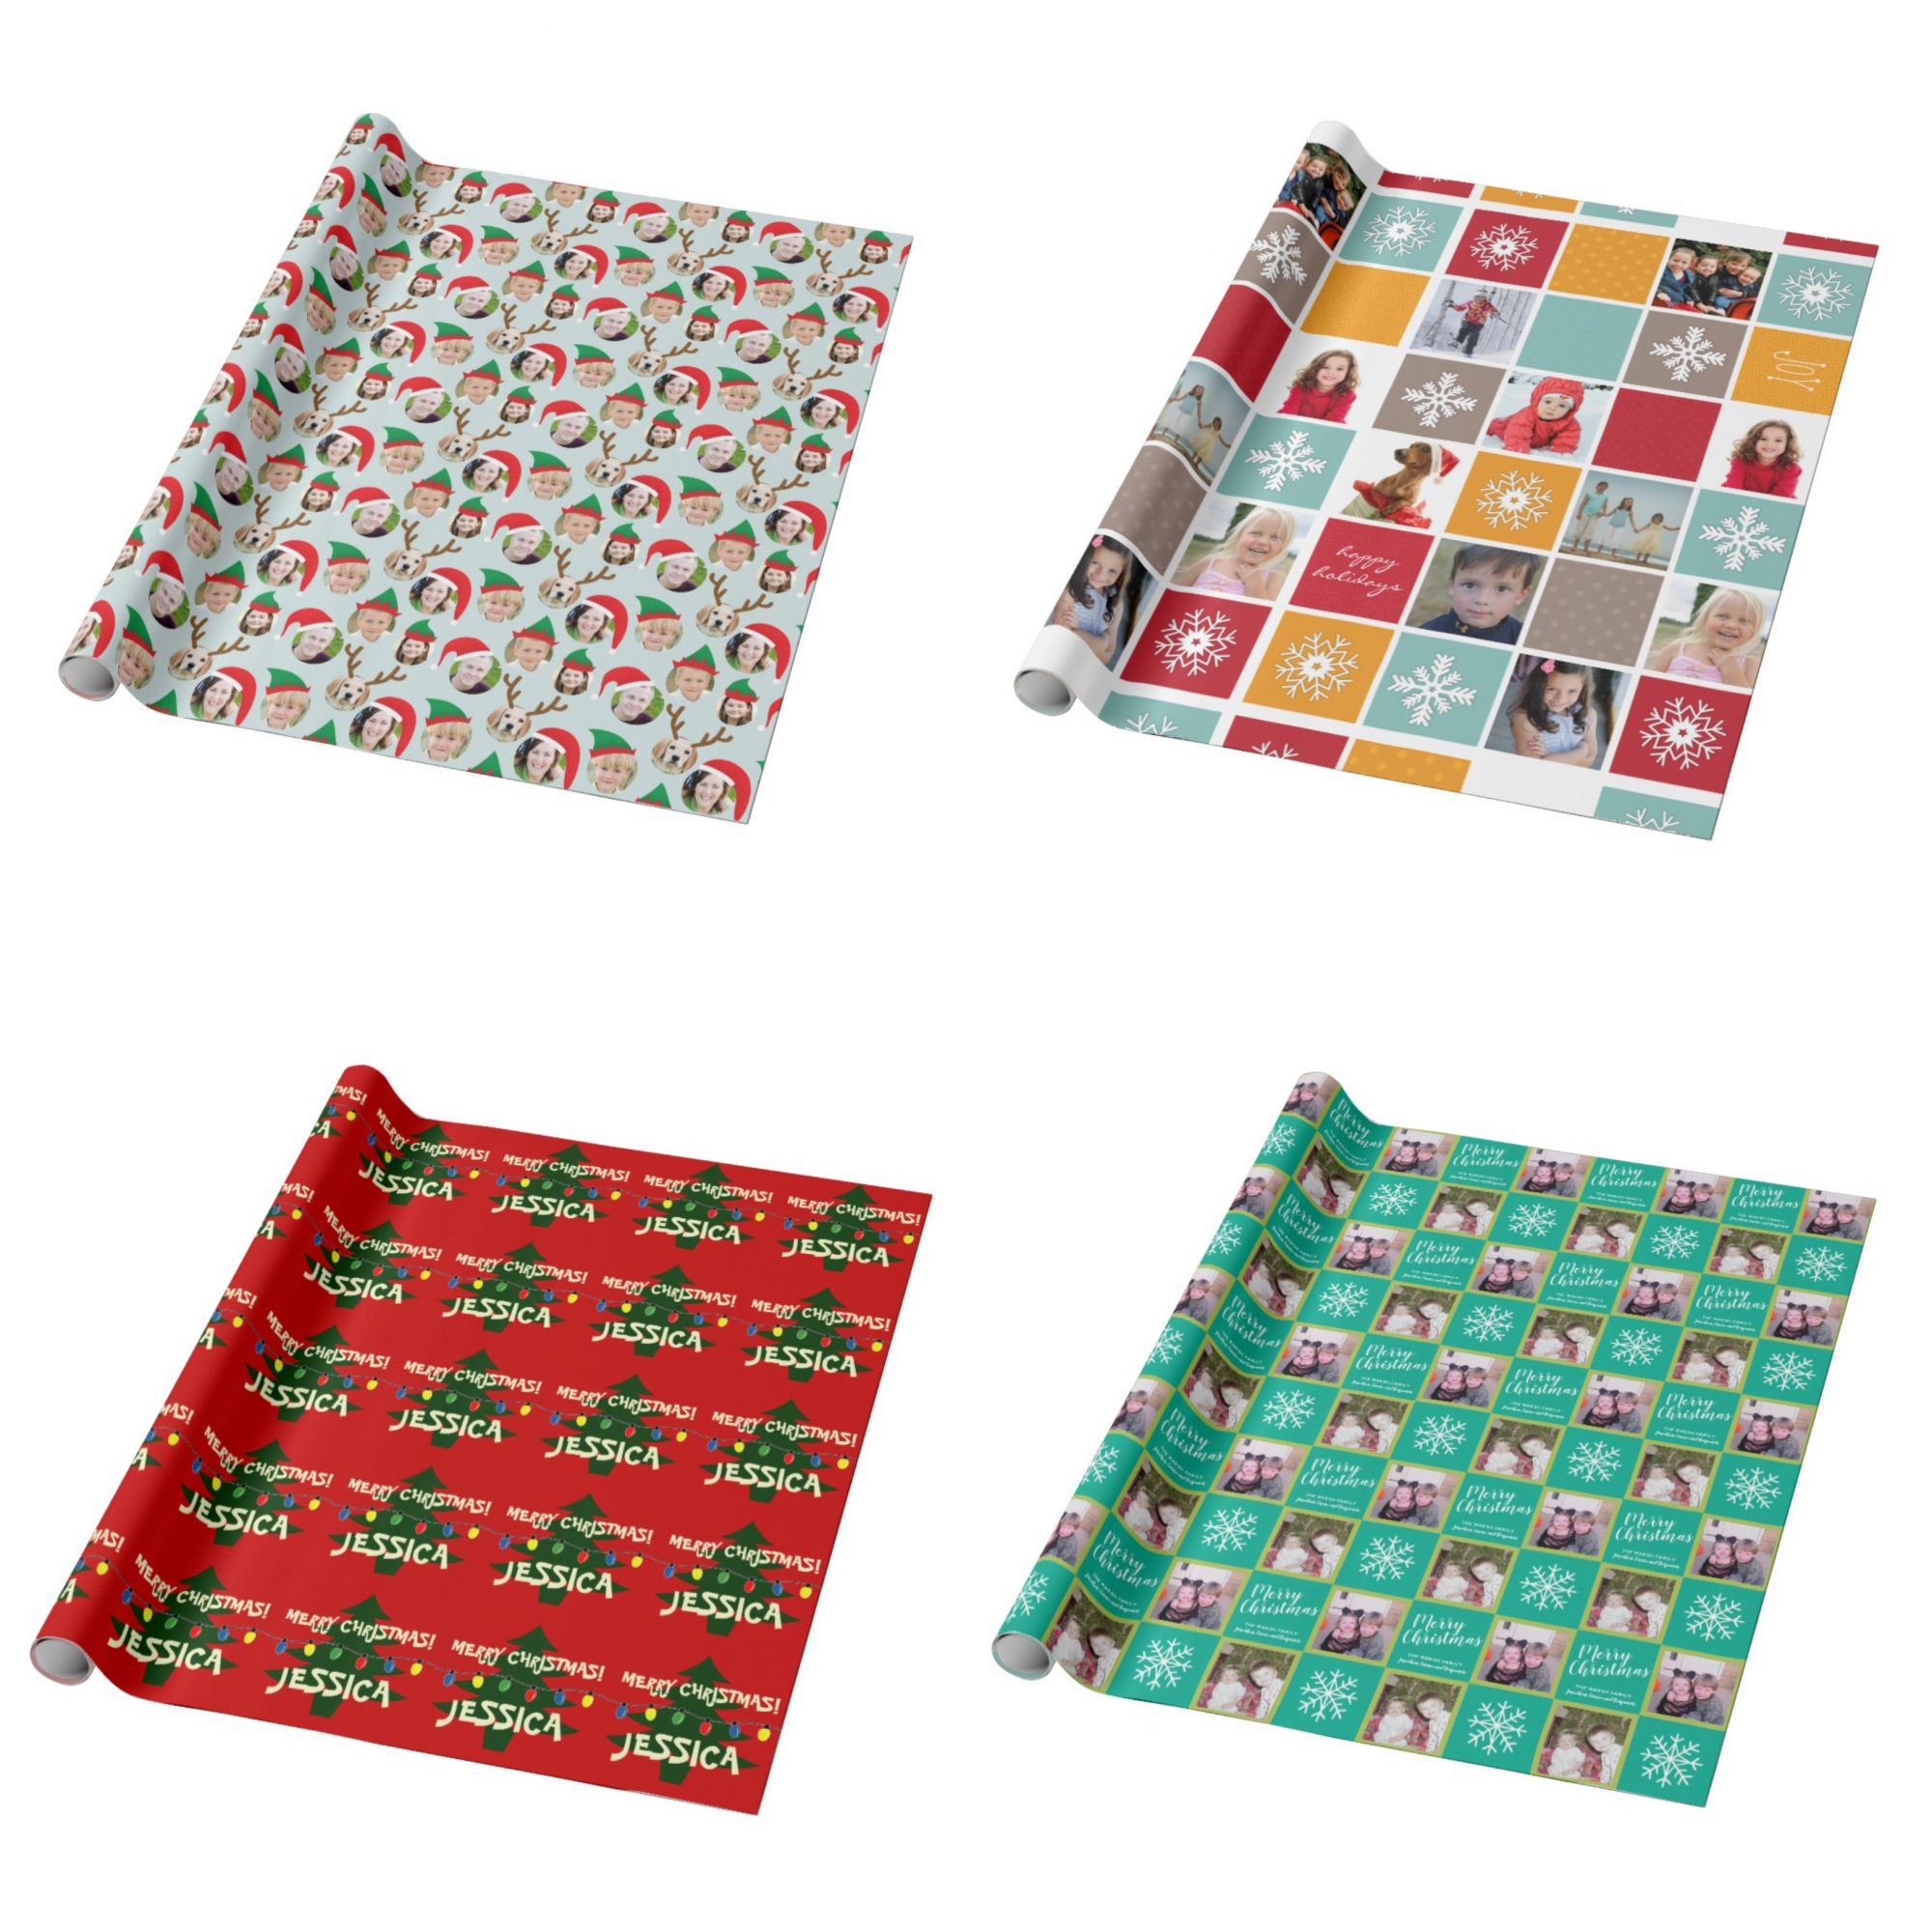 Zazzle Custom Wrapping Paper